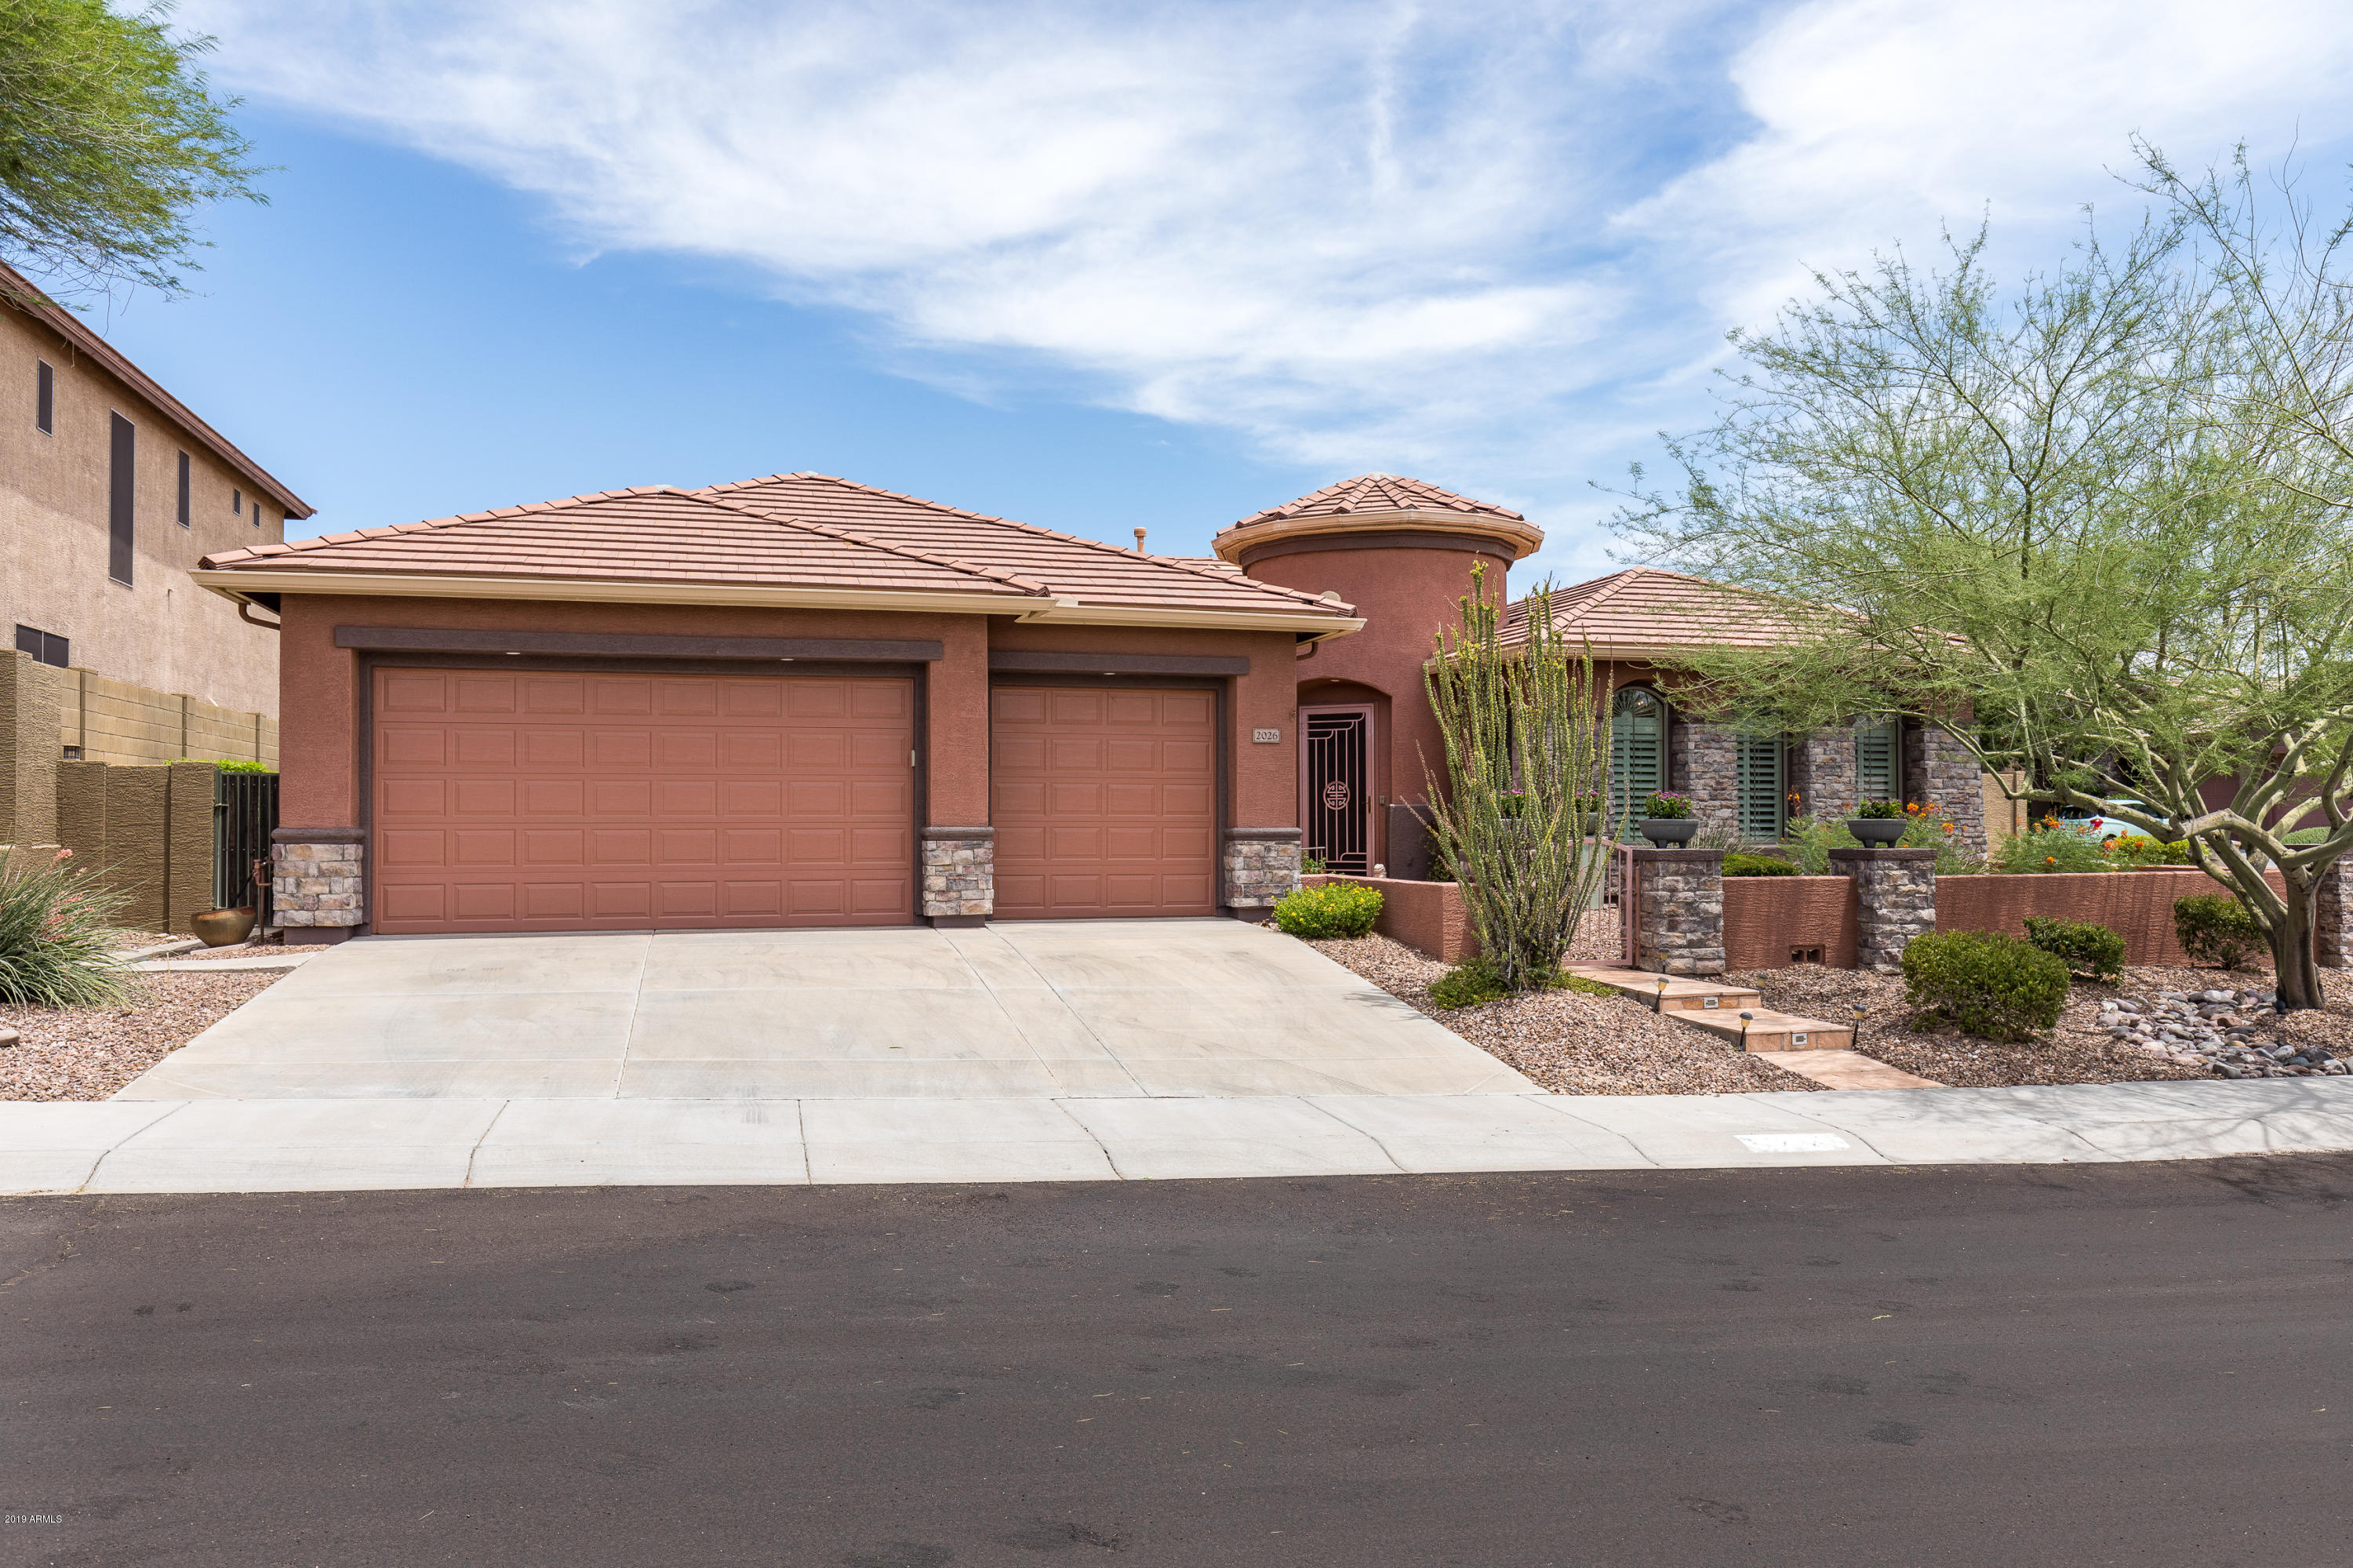 2026 W HIDDEN TREASURE Way, Phoenix North, Arizona